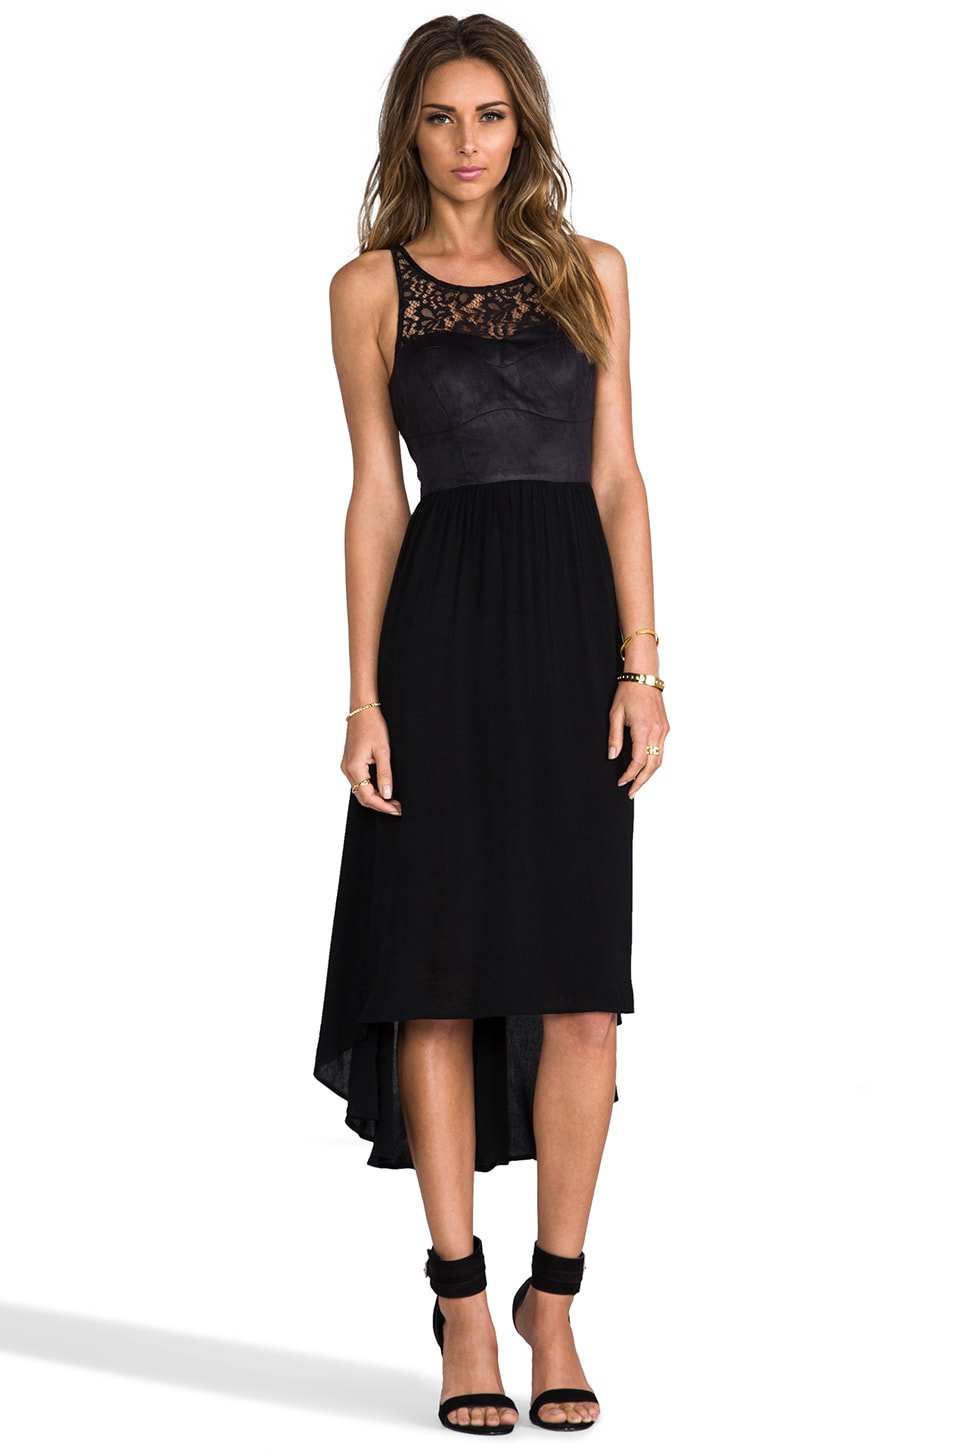 Ladakh Midnight Crush Dress in Black